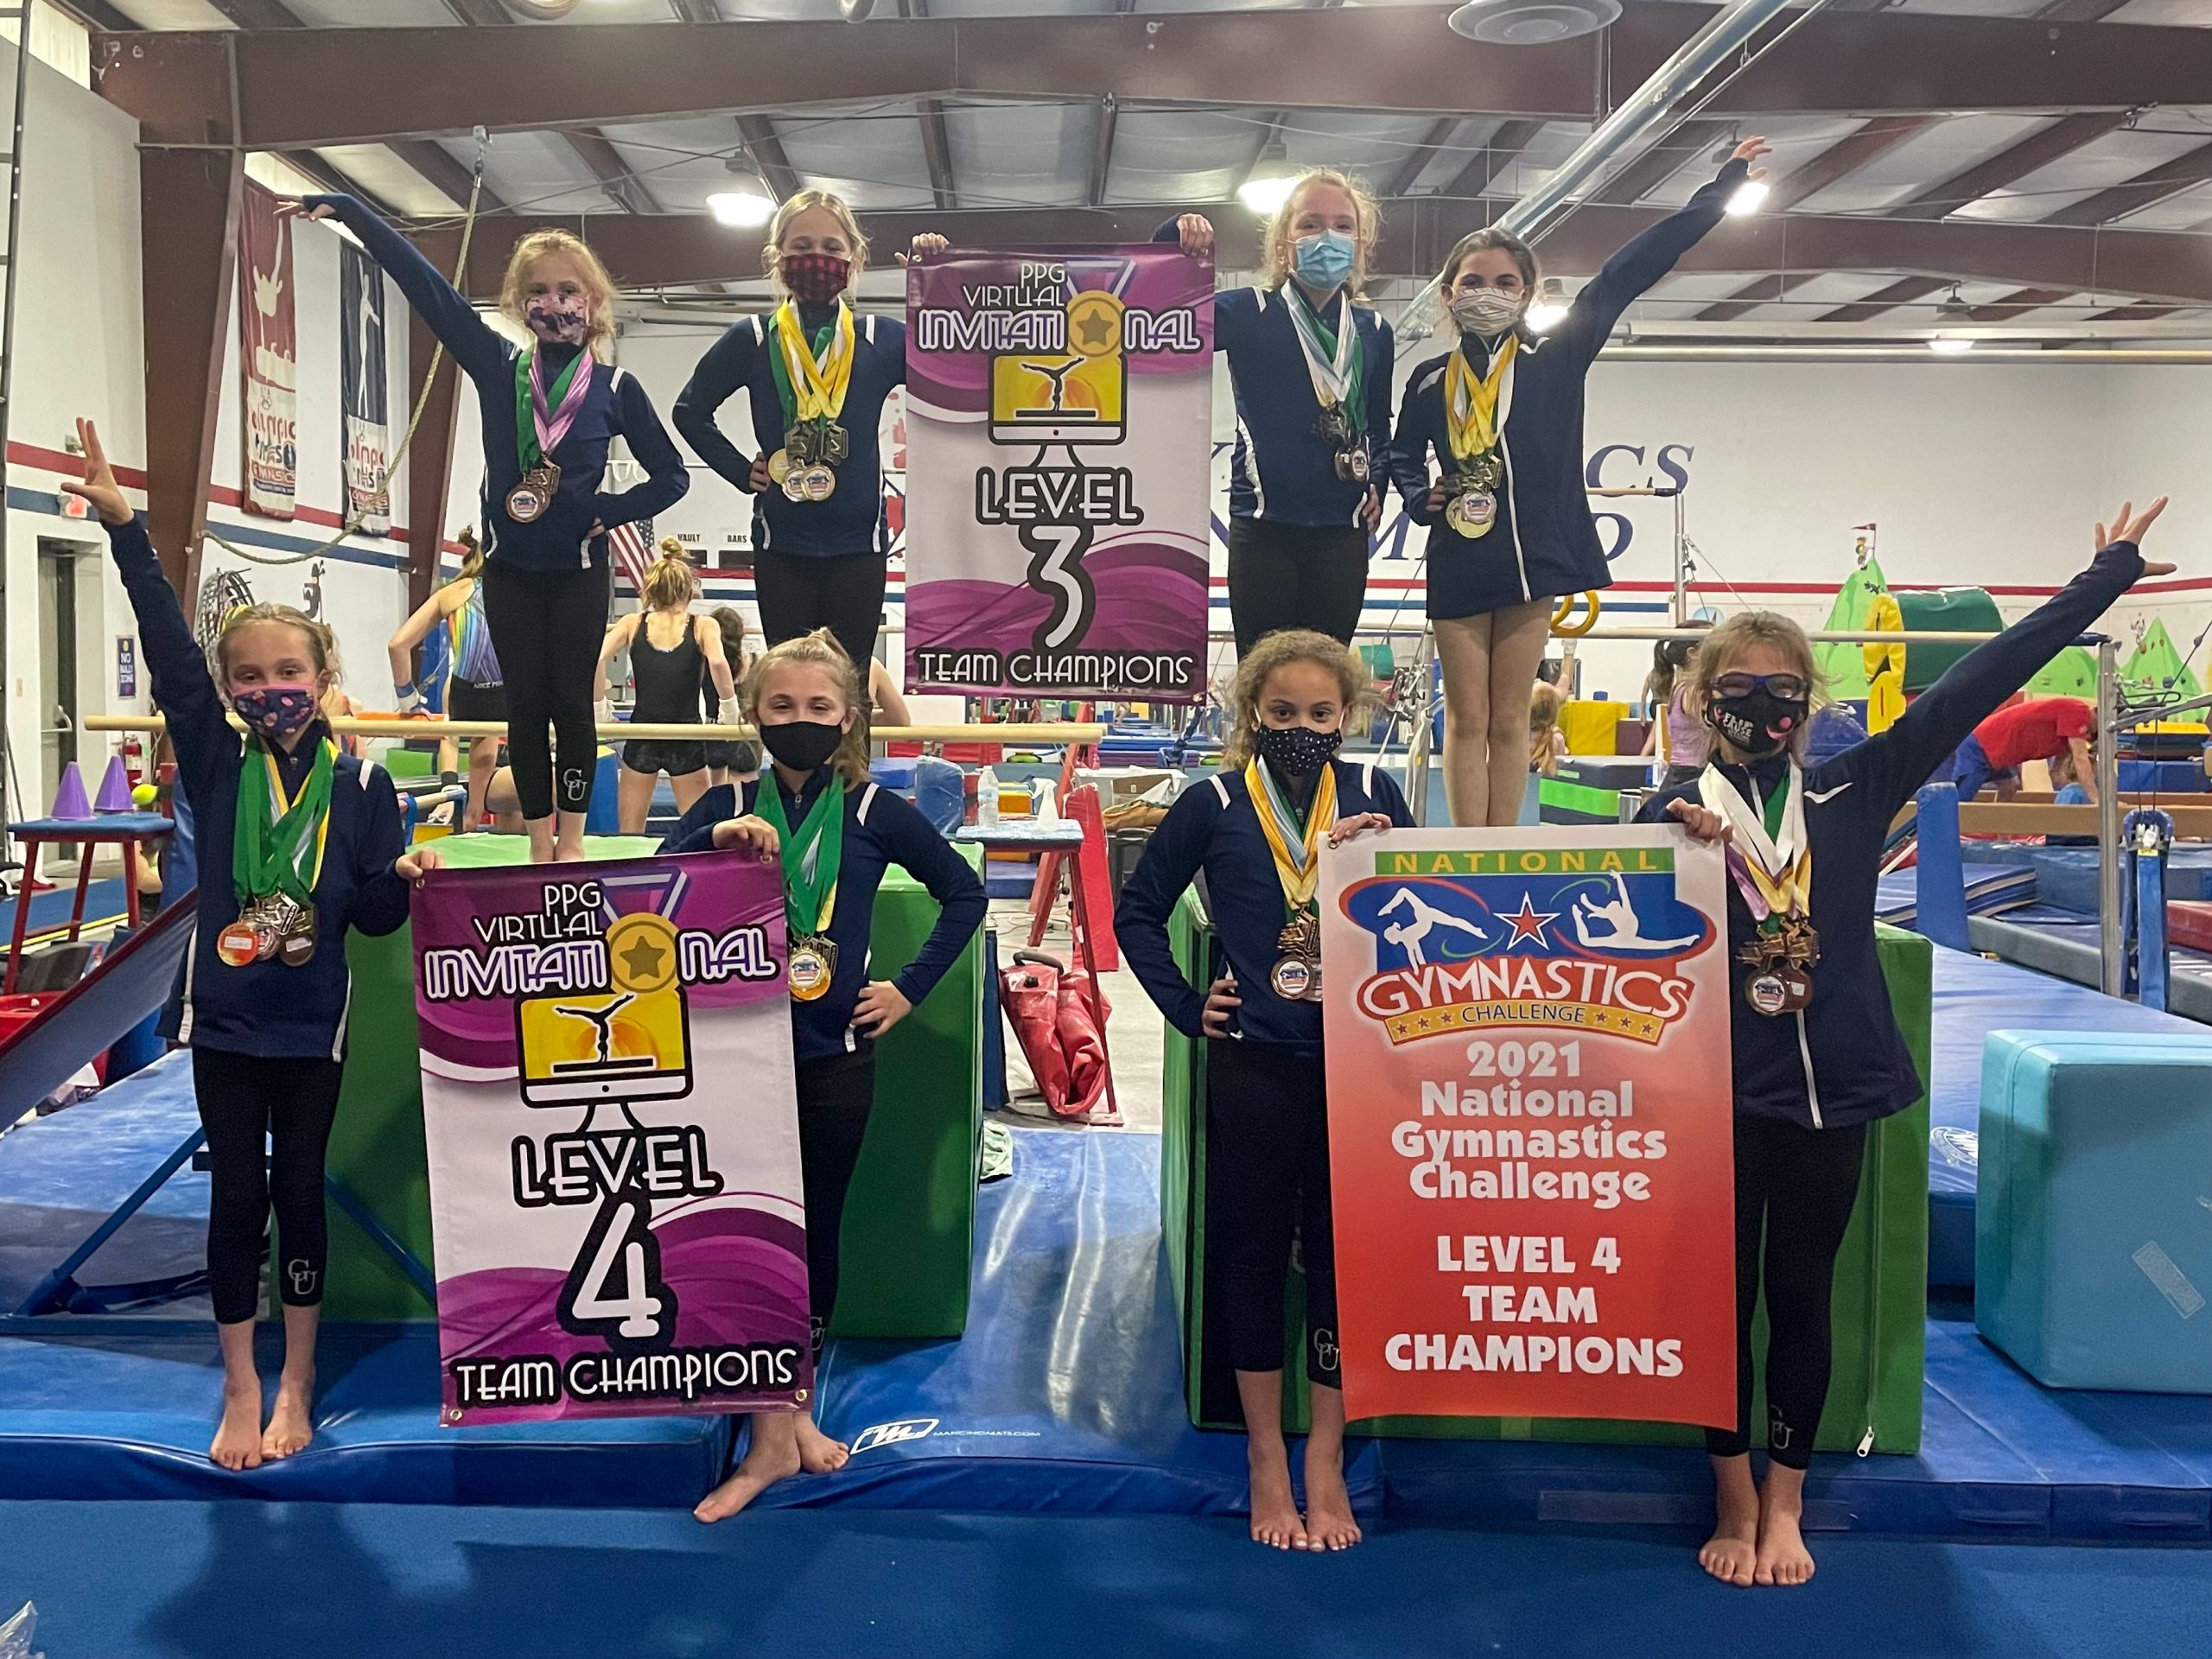 gymnastics unlimited level 3 and 4 teams